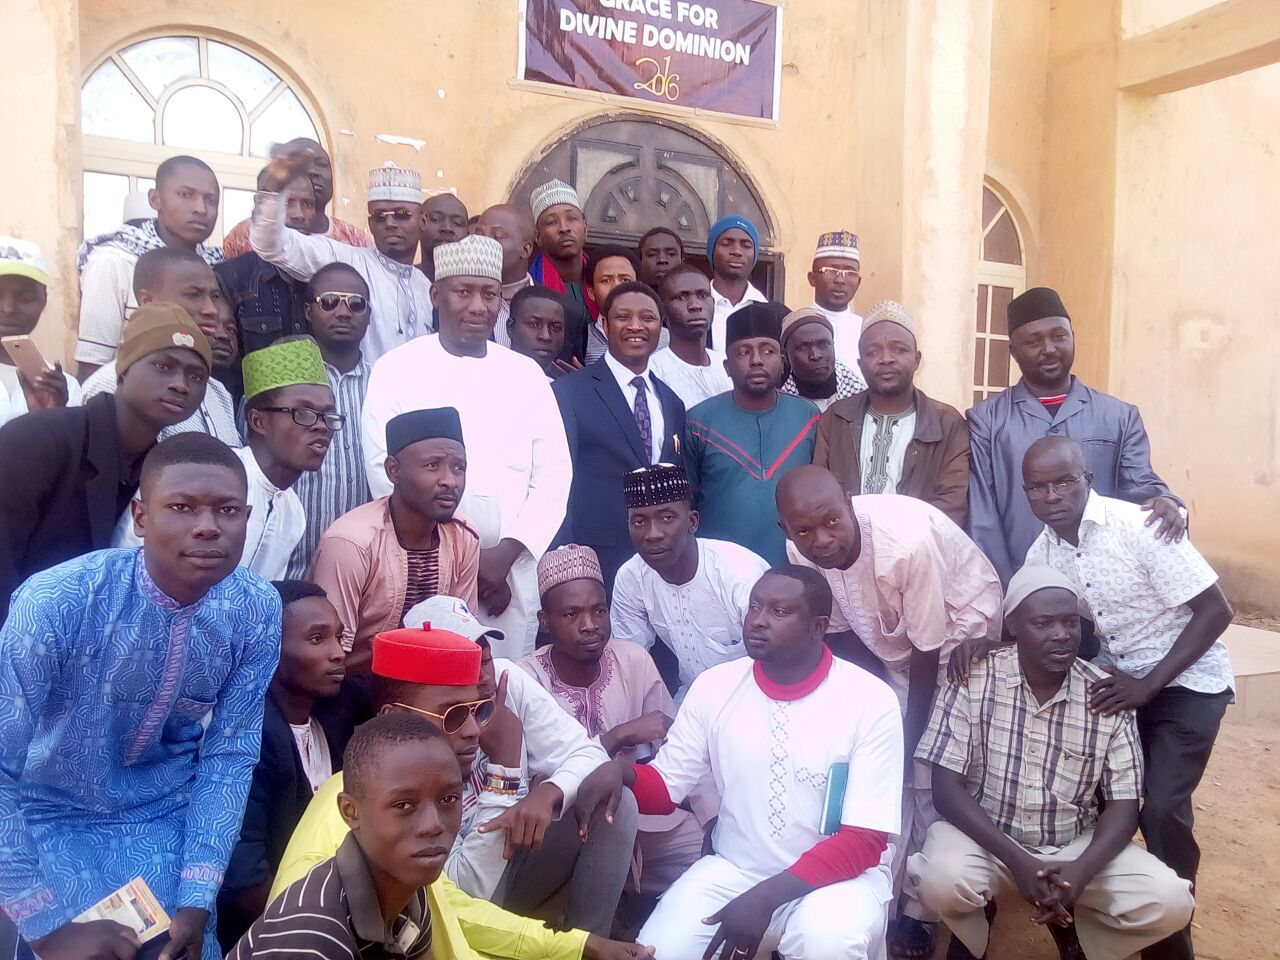 brothers rejoice with Christians in jos